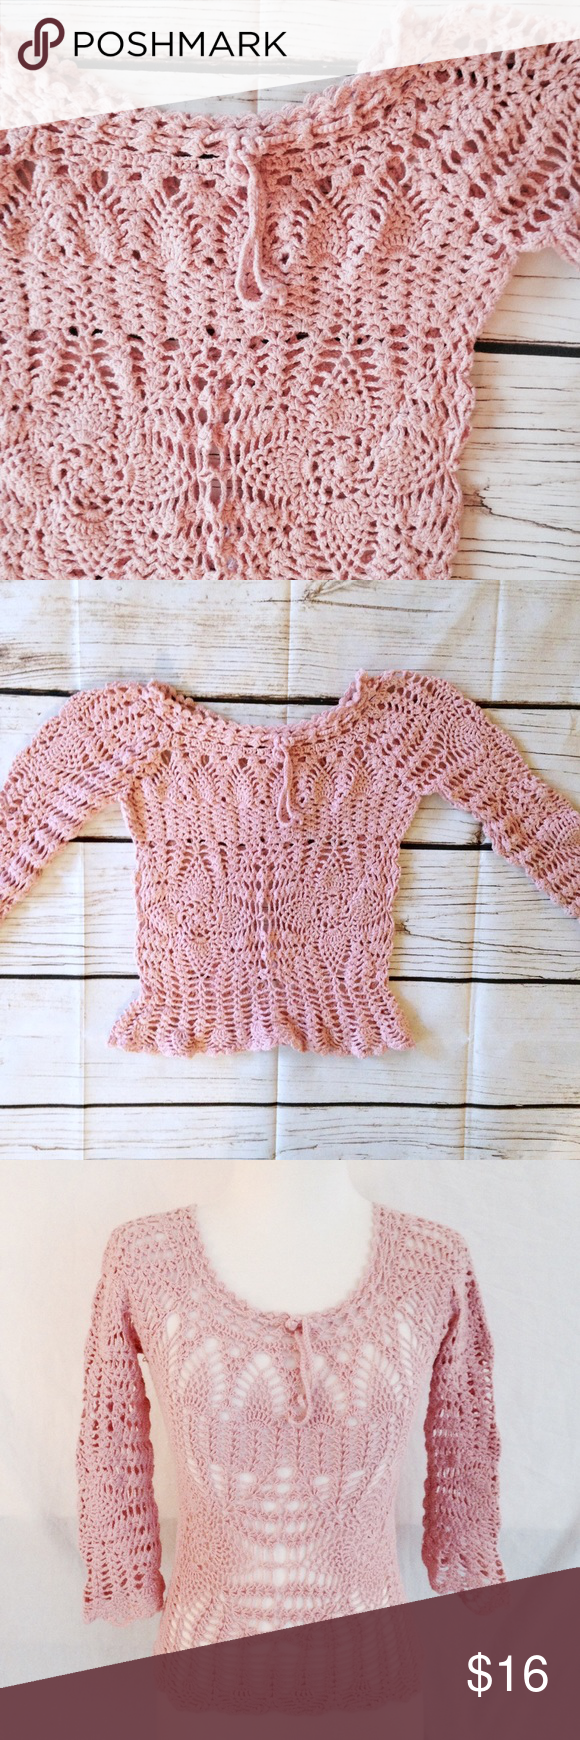 7bc65104b3a55d Vintage Pink Crochet Boho Top True vintage doily crochet knit layering top.  Boatneck fit with